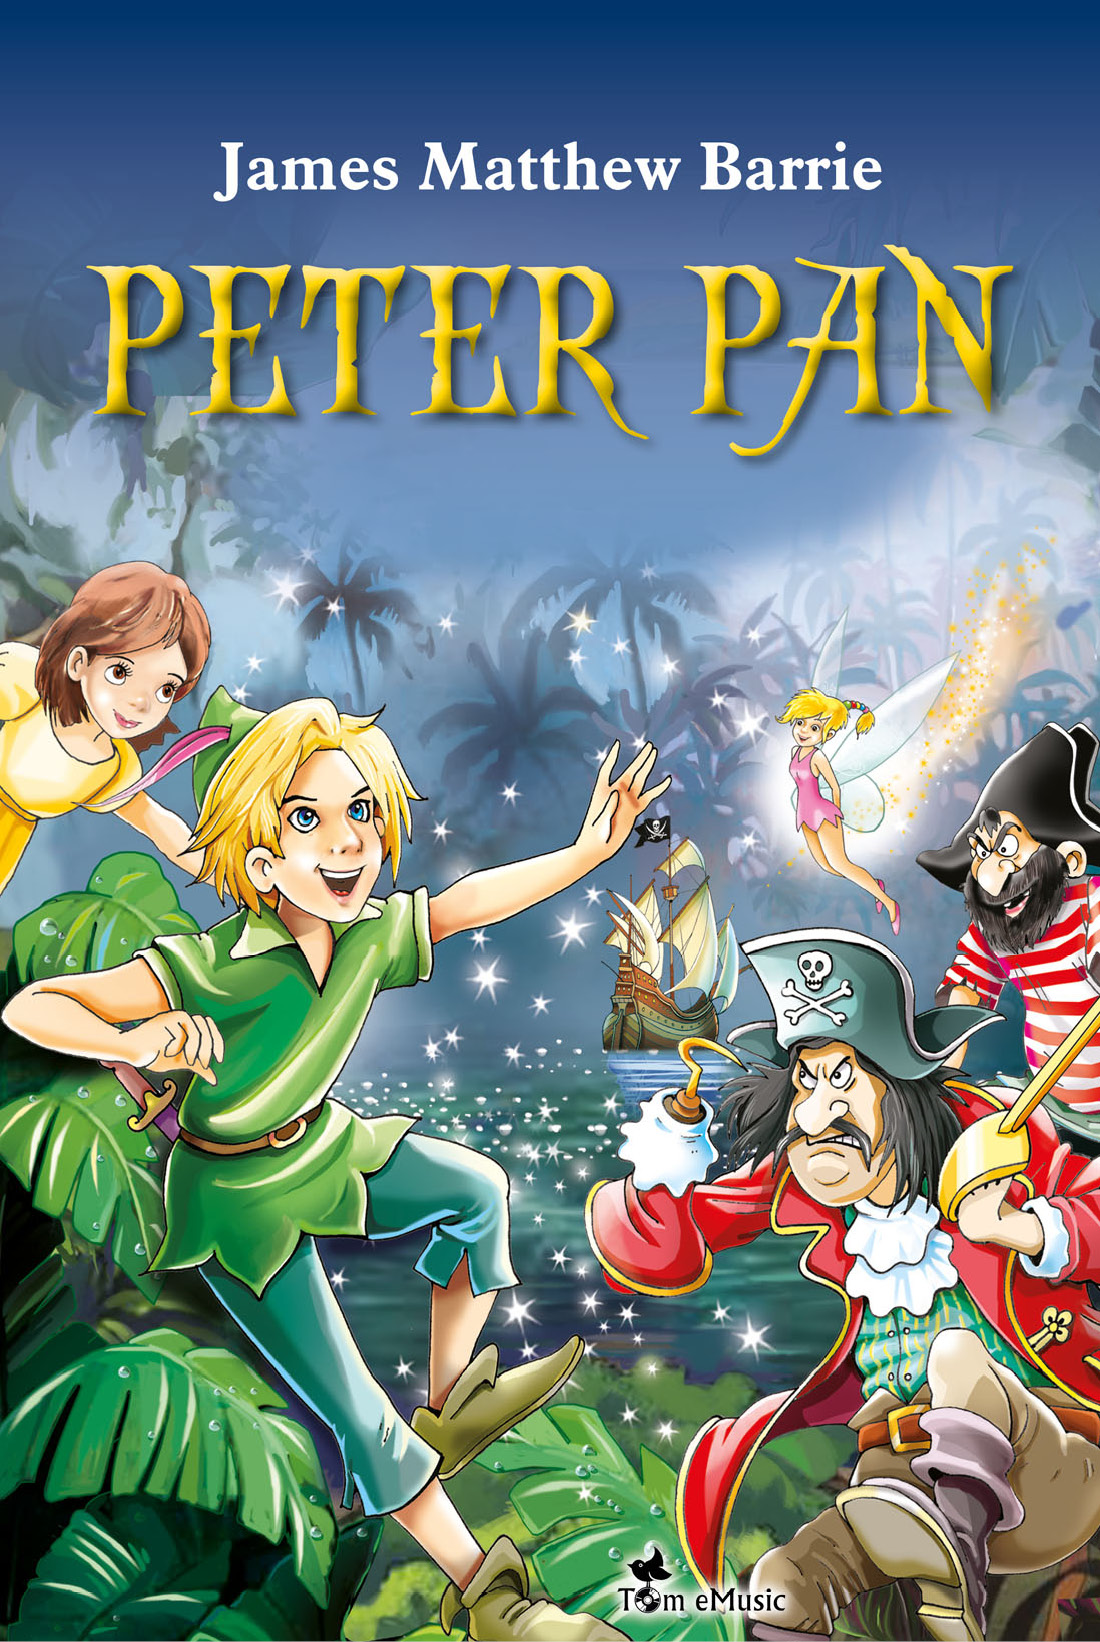 Peter Pan. An Illustrated Story for Kids